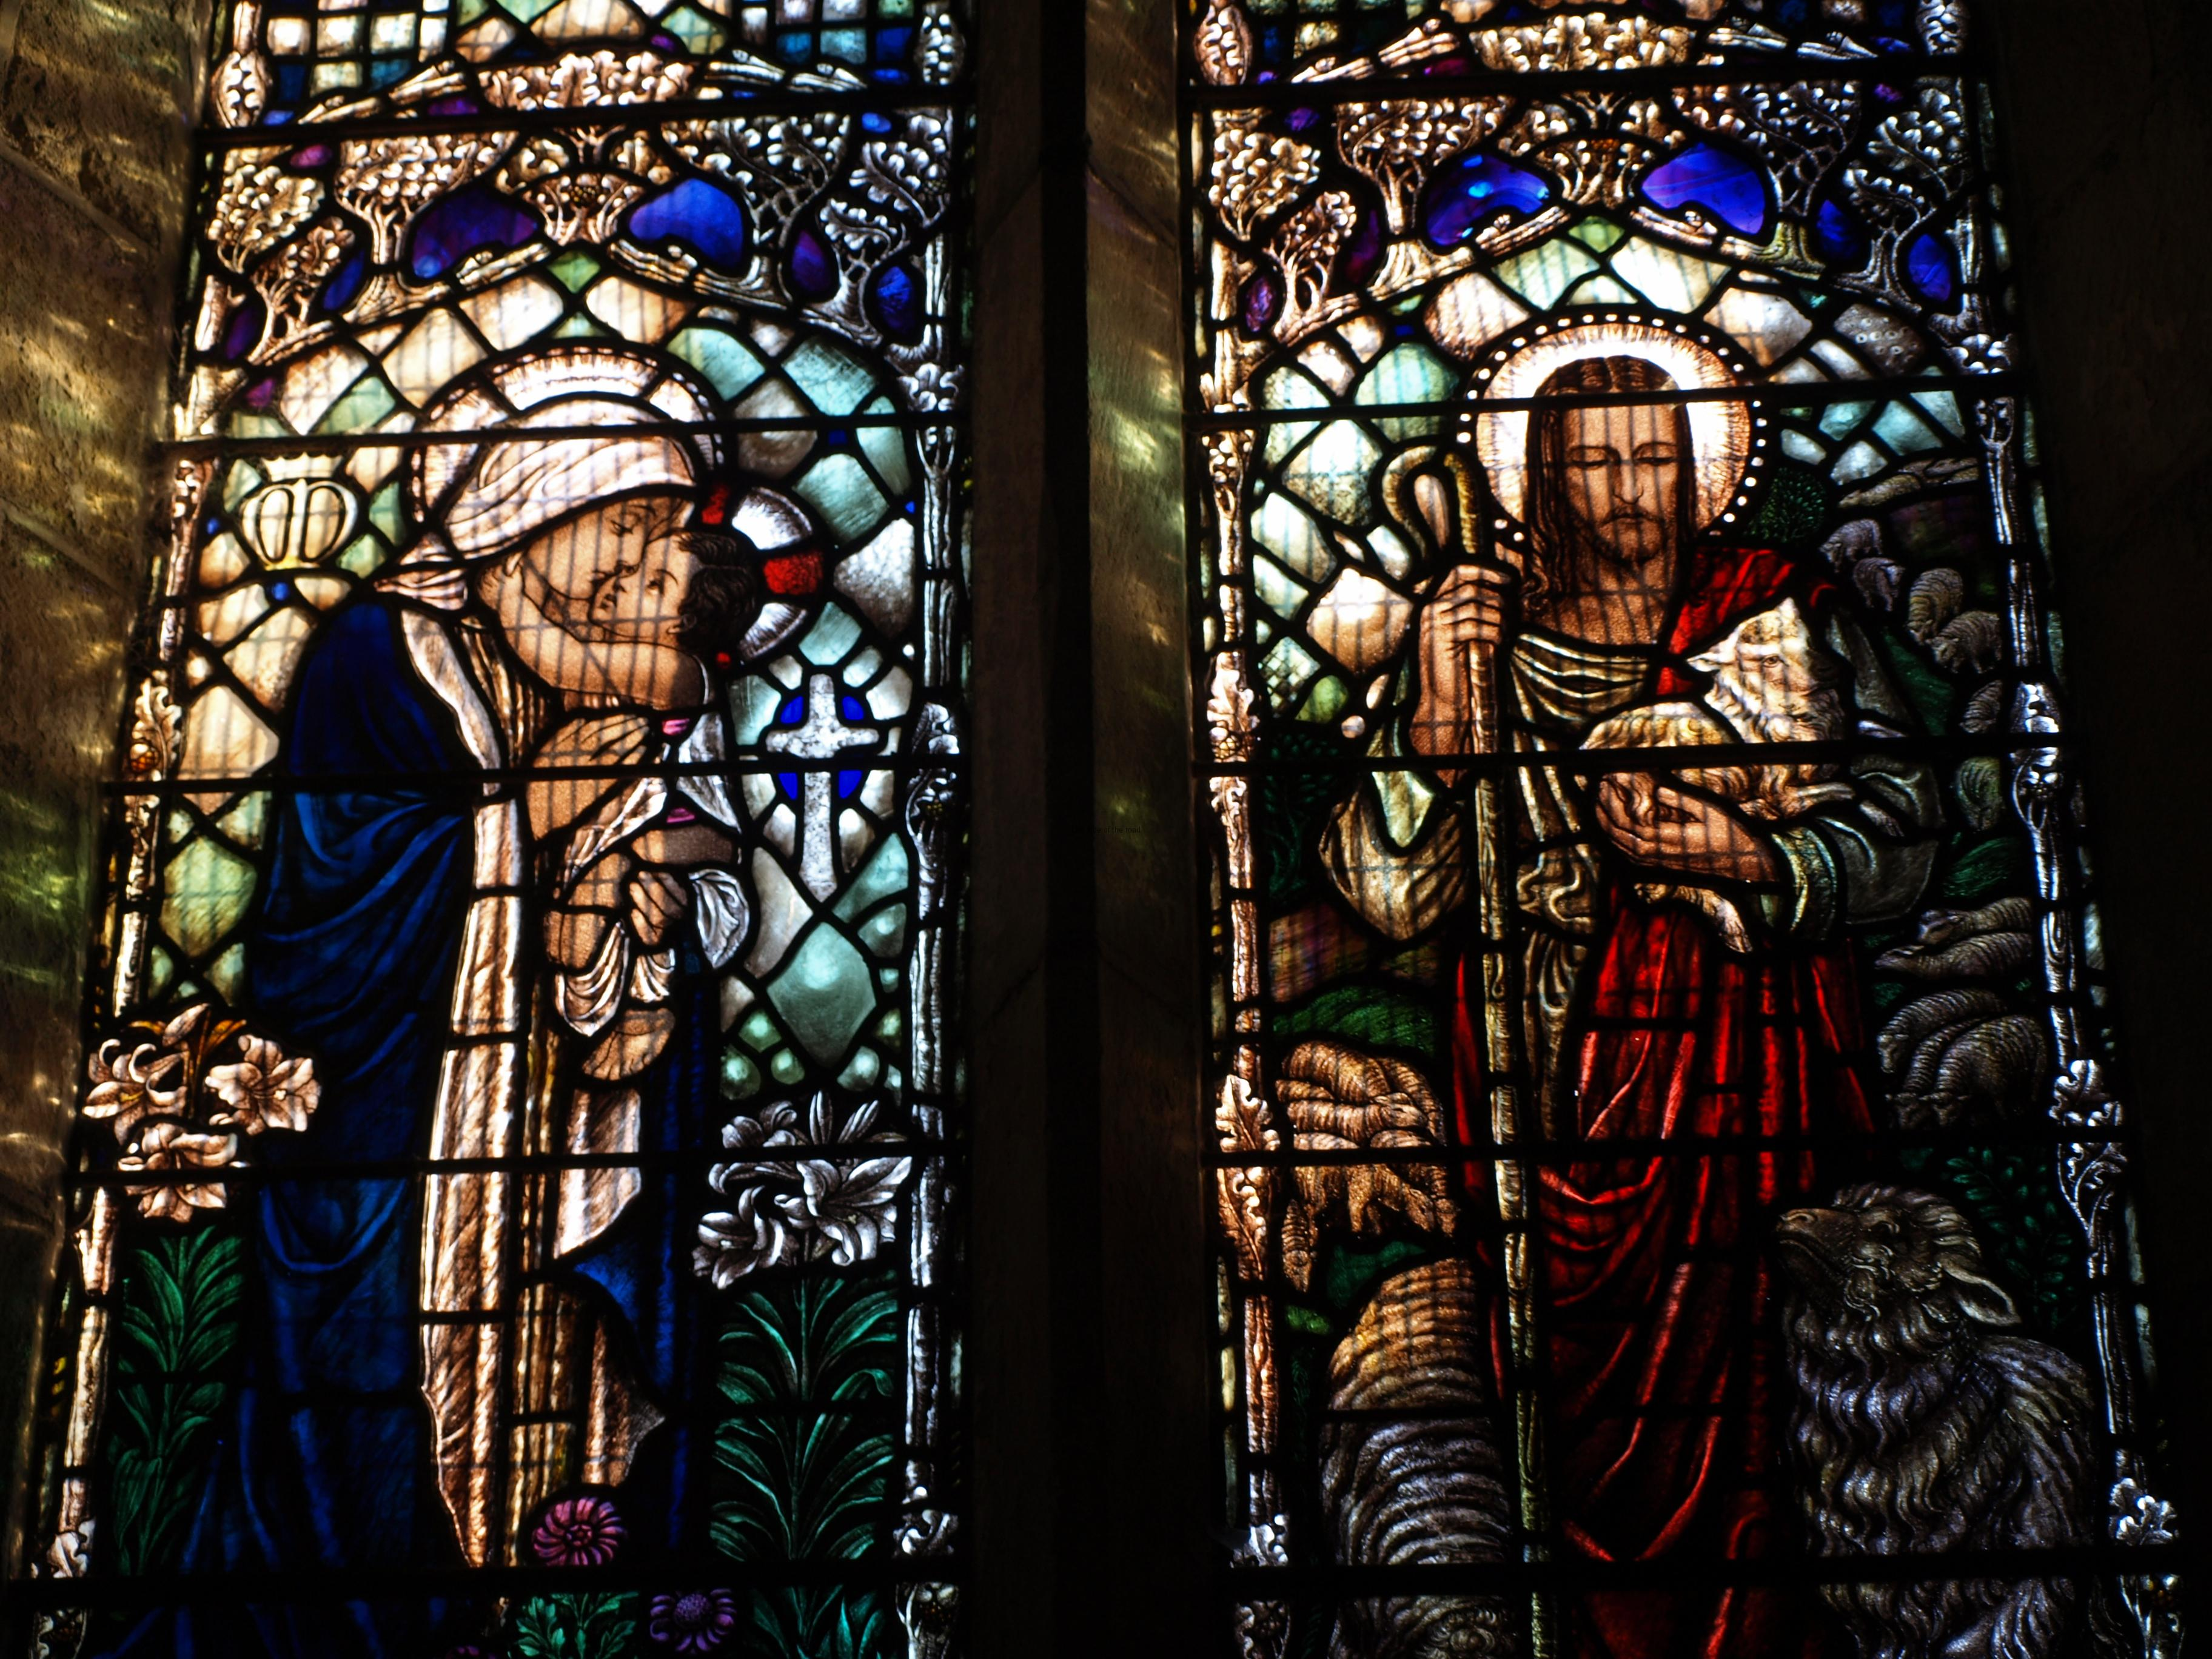 Stained Glass Window, St Andrew's Church, Grinton